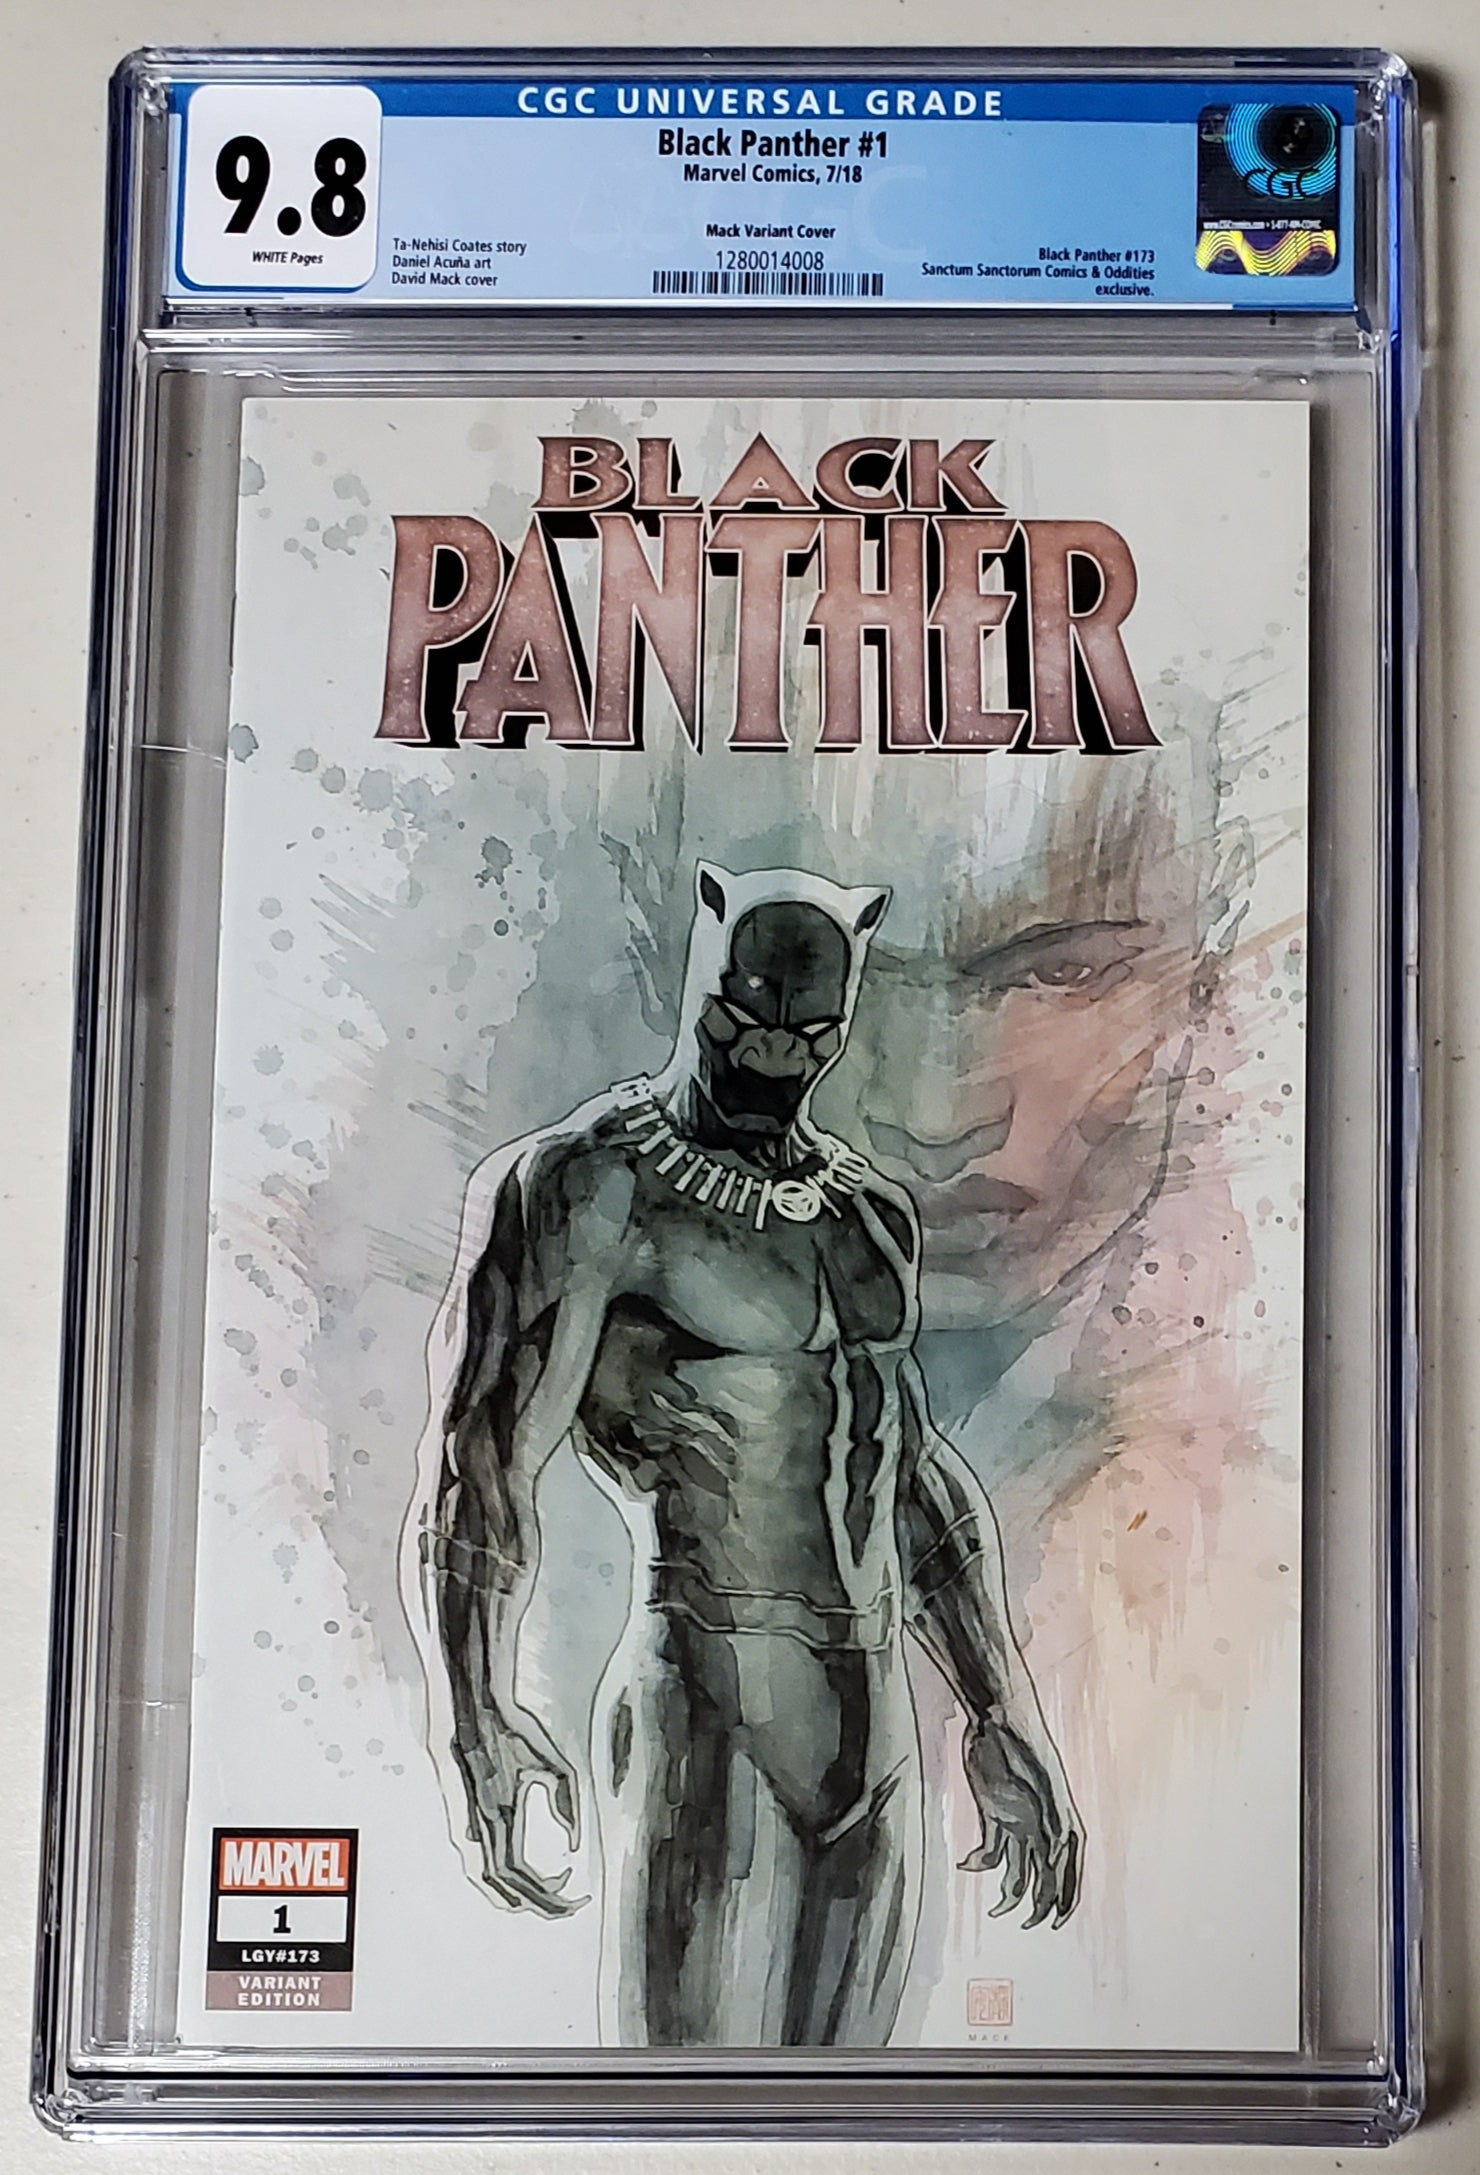 9.8 CGC Black Panther #1 SSCO David Mack Variant 2018